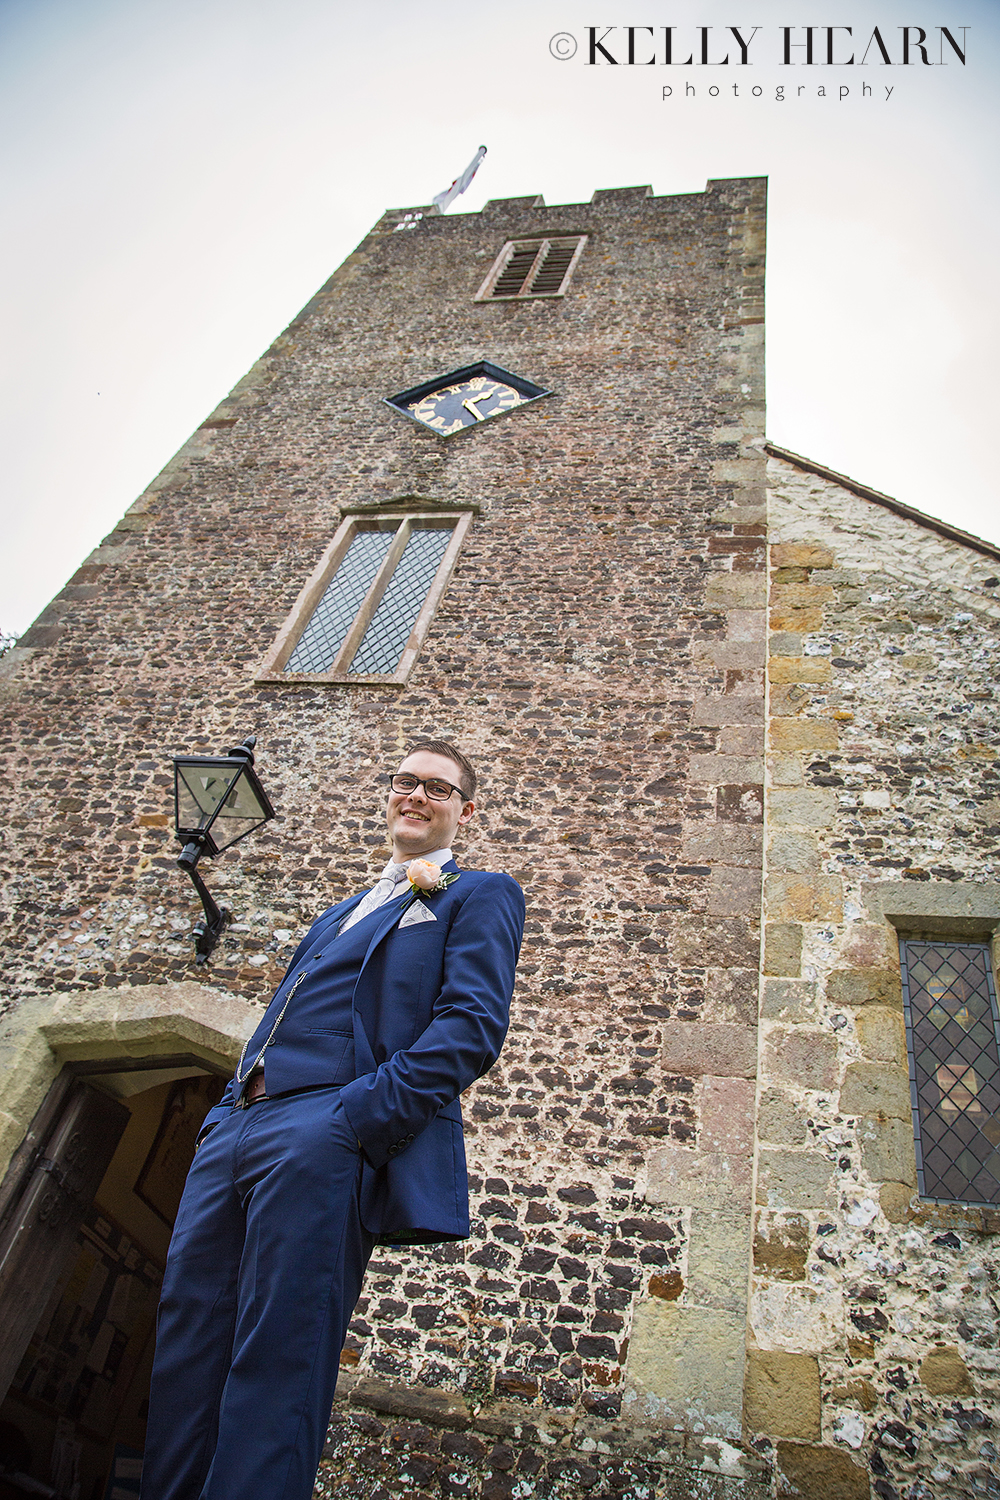 NAX_groom-outside-church.jpg#asset:2041